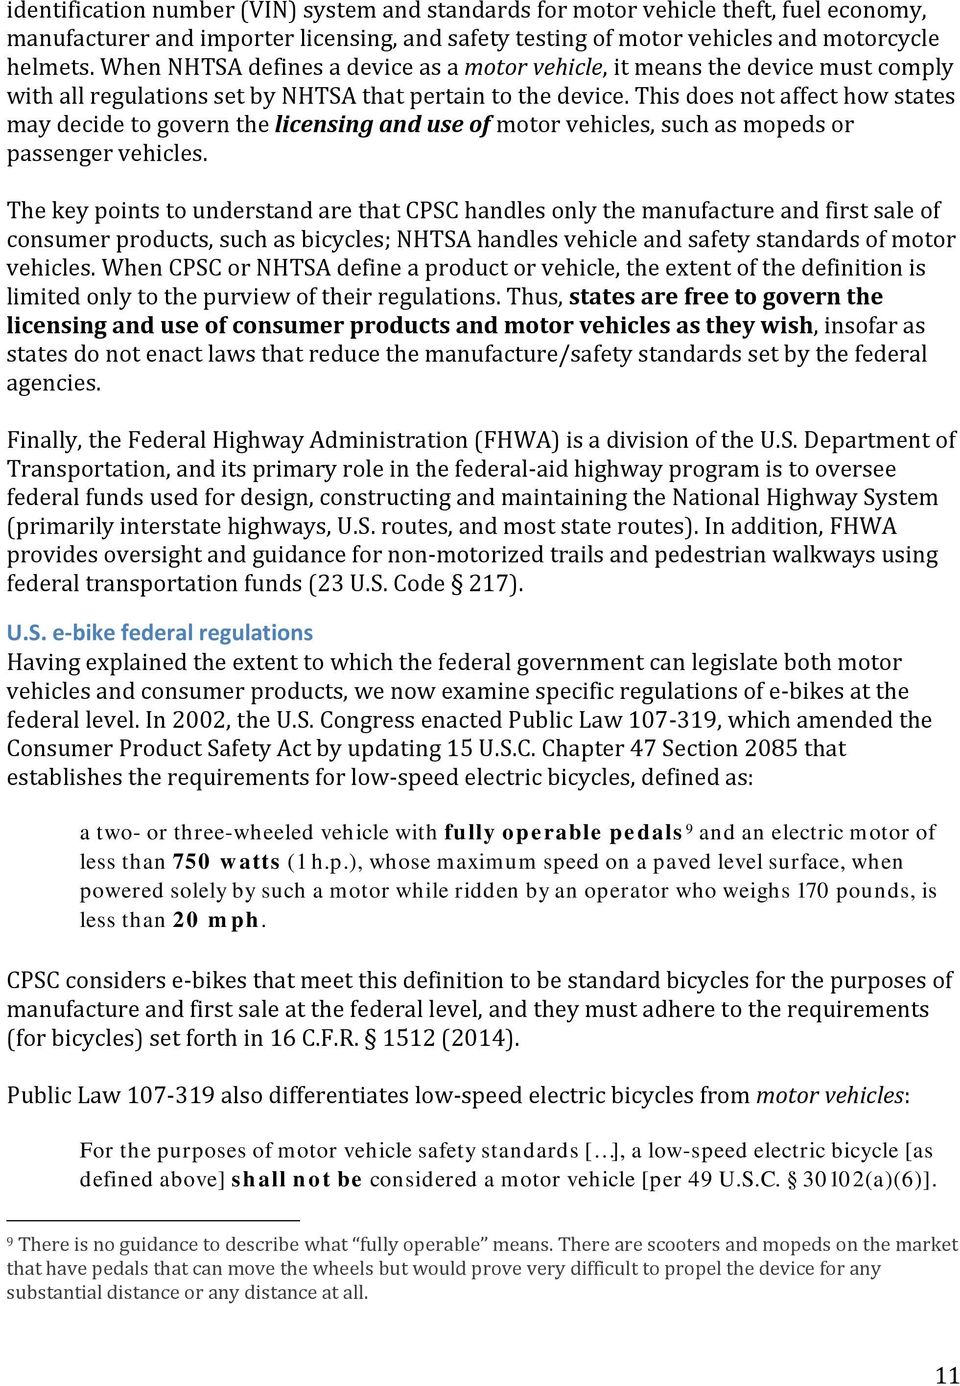 Regulations Of E Bikes In North America Pdf With An Understanding This First Requirement Electric Does Not Affect How States May Decide To Govern The Licensing And Use Motor